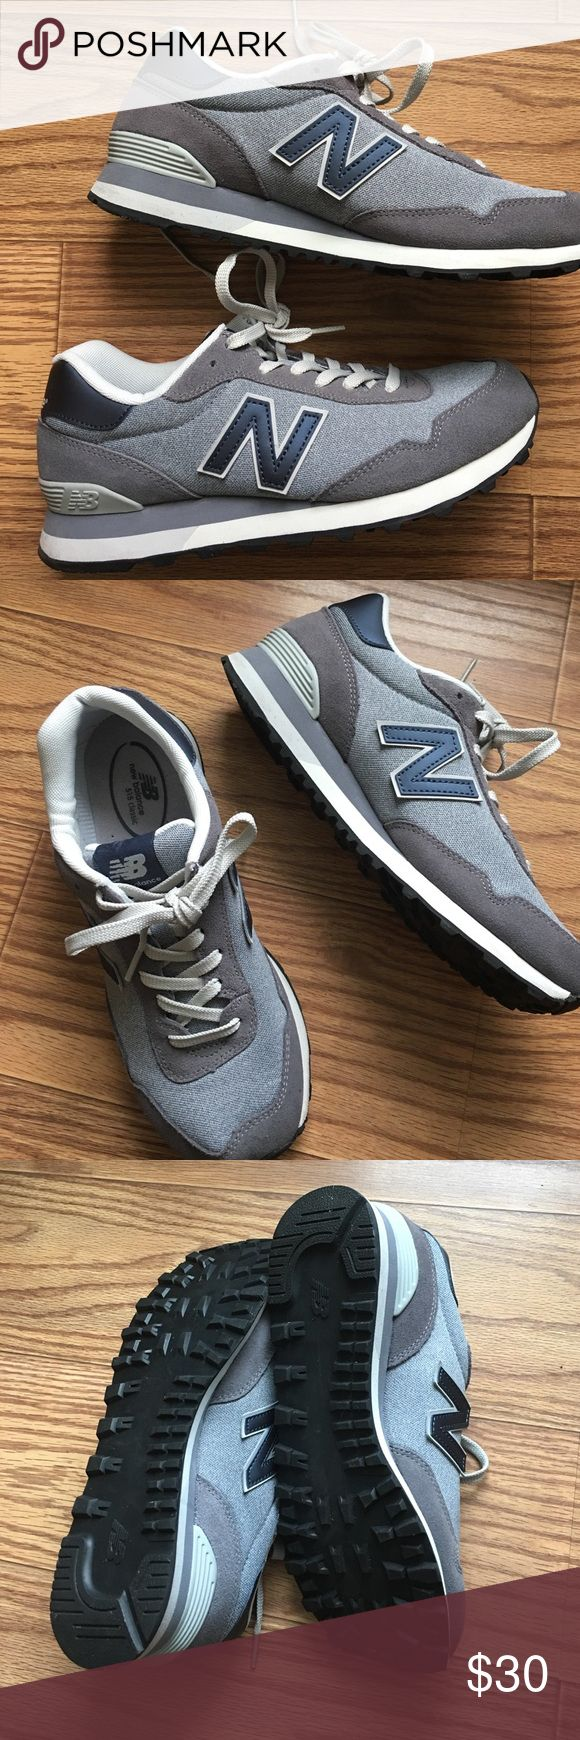 New Balance 515 Classic Sneakers New Balance Classics 515. Brand new. Size: 9.5 (true to size). Mix of gray, blue, and metallic blue. Gray parts of the shoe are suede. Black rubber sole. New Balance Shoes Sneakers